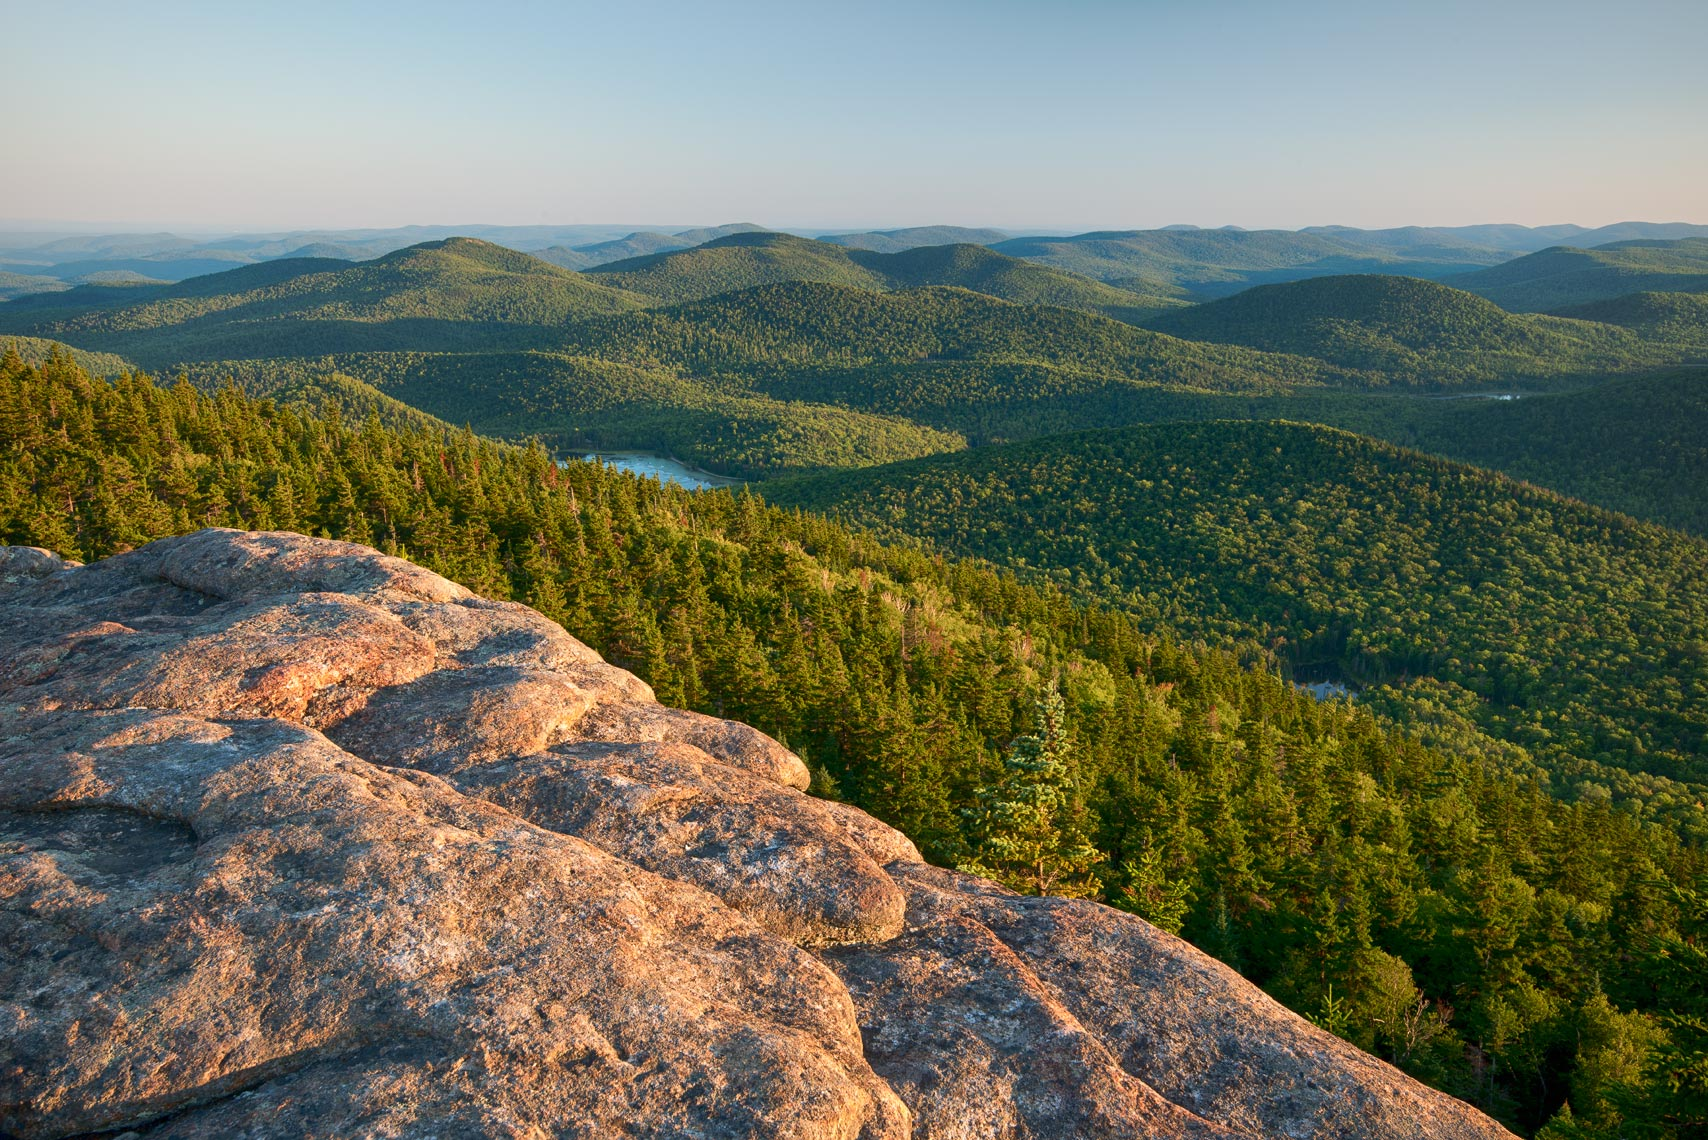 Summer Evening on Crane Mountain, Adirondack Mountains, New York State